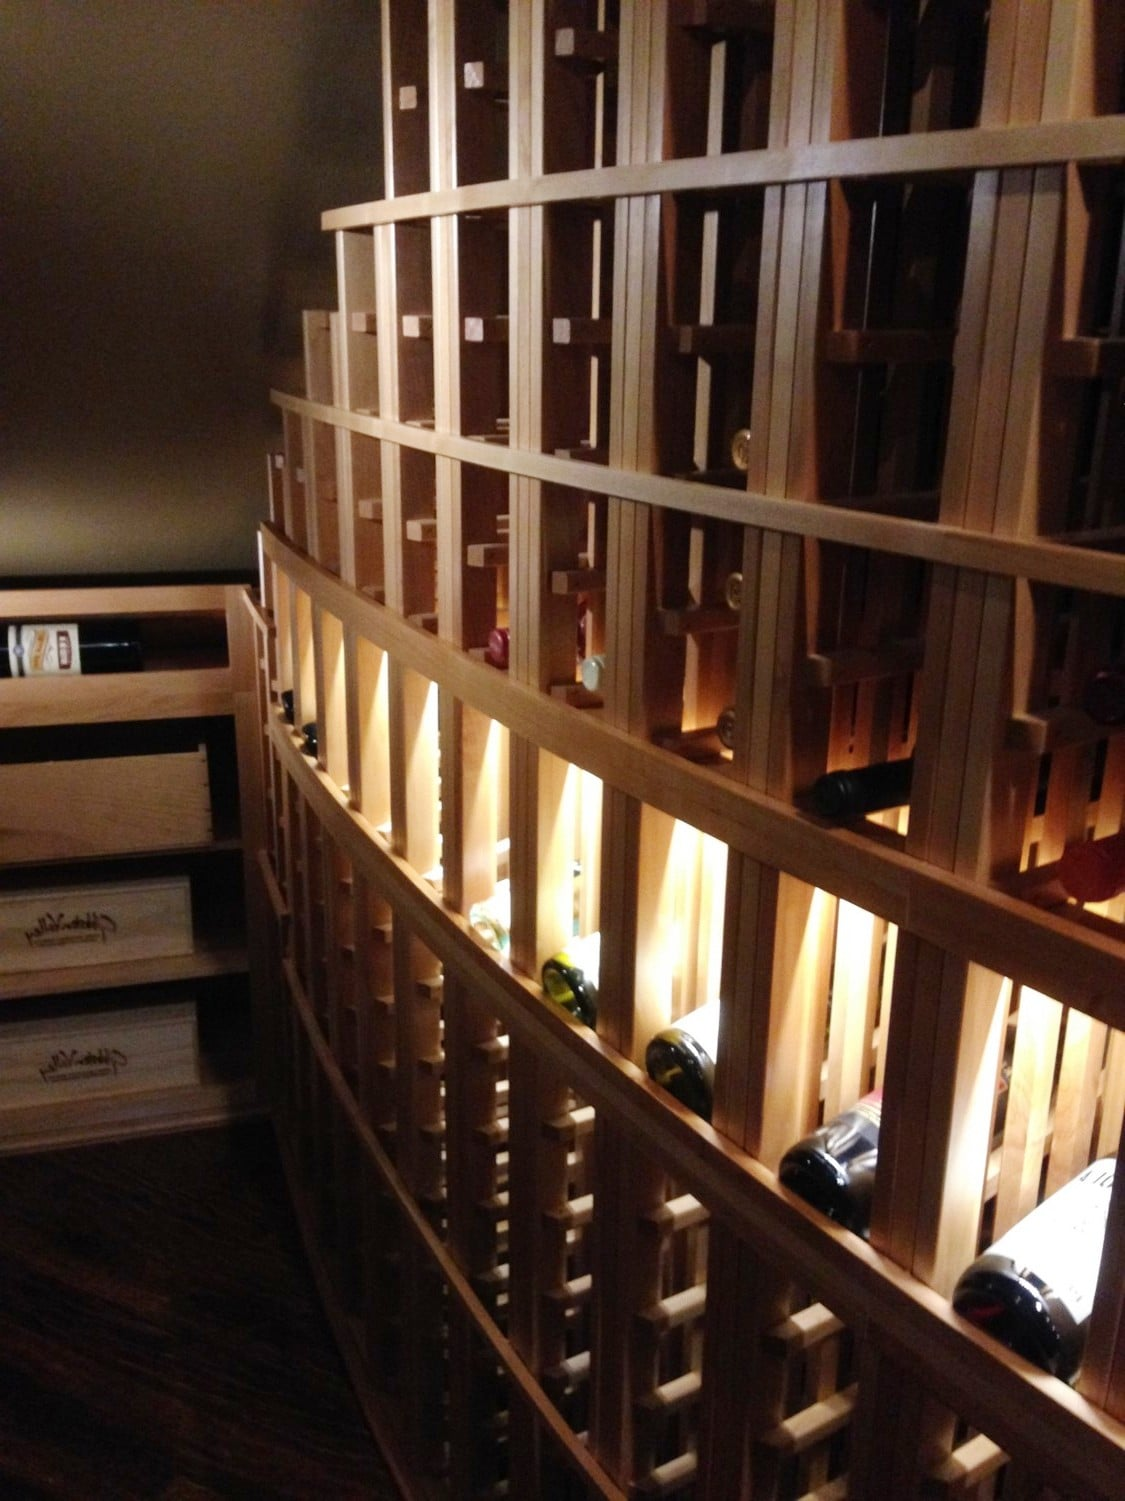 Texas Racking Design Curved Racks with Led Lighted Wine Cellar Display